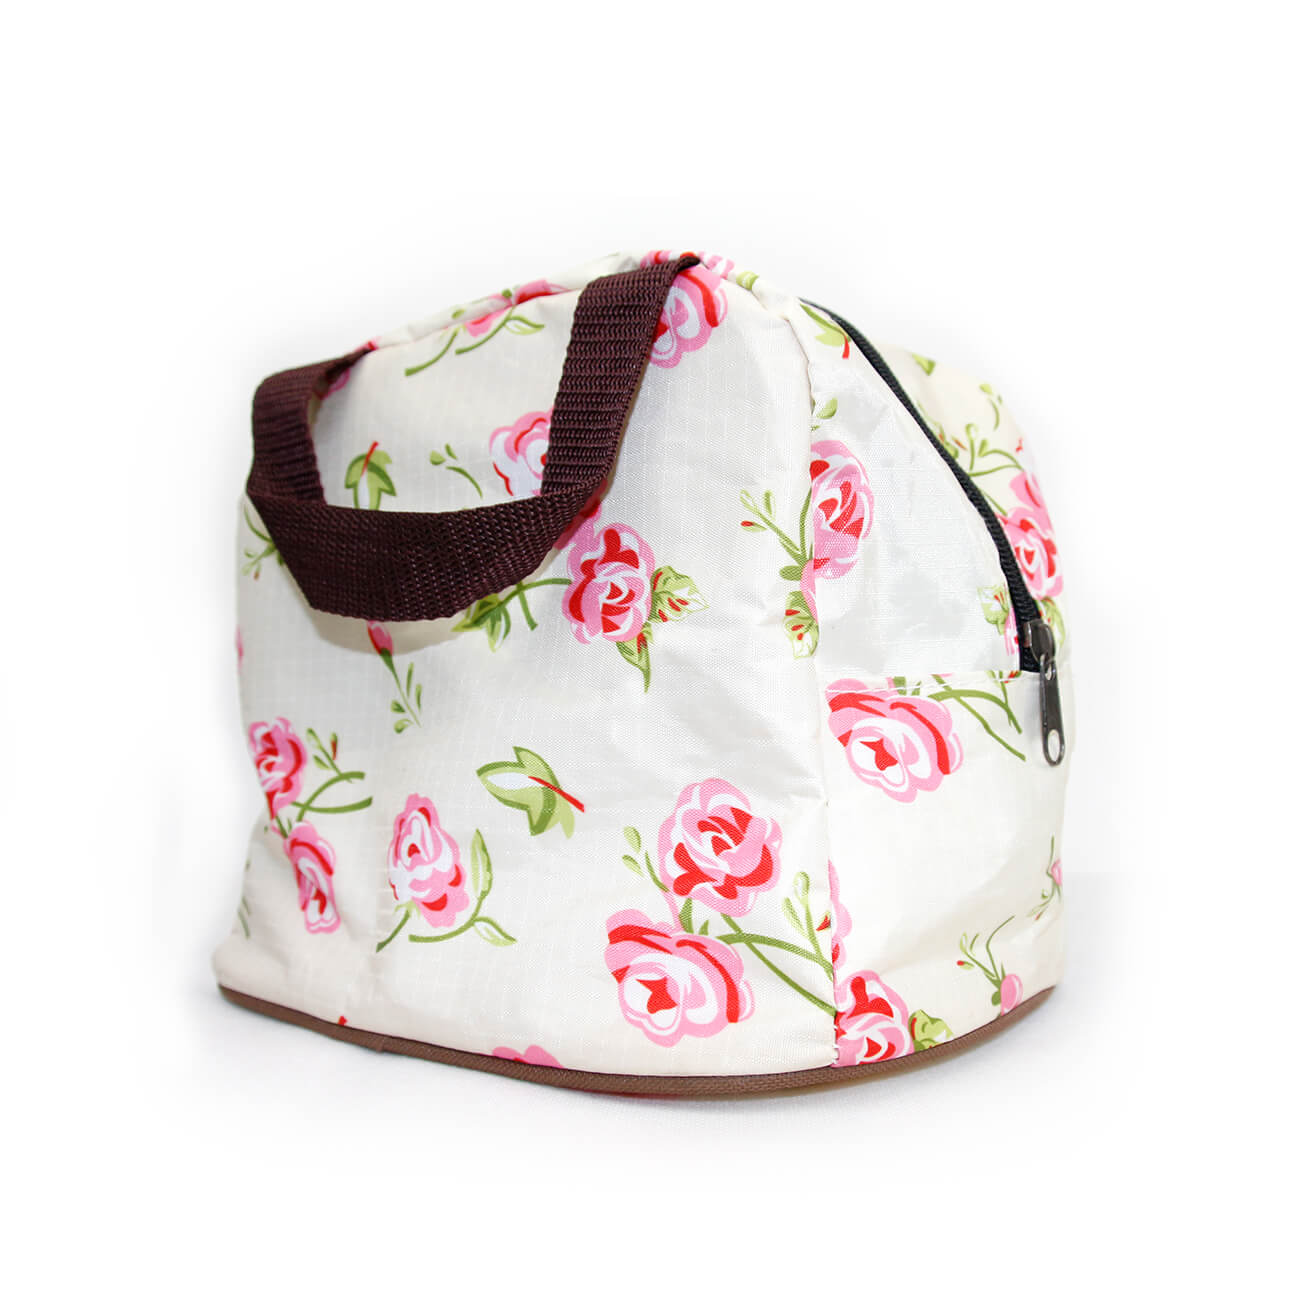 Lunch bags casual handbag small bag handbag